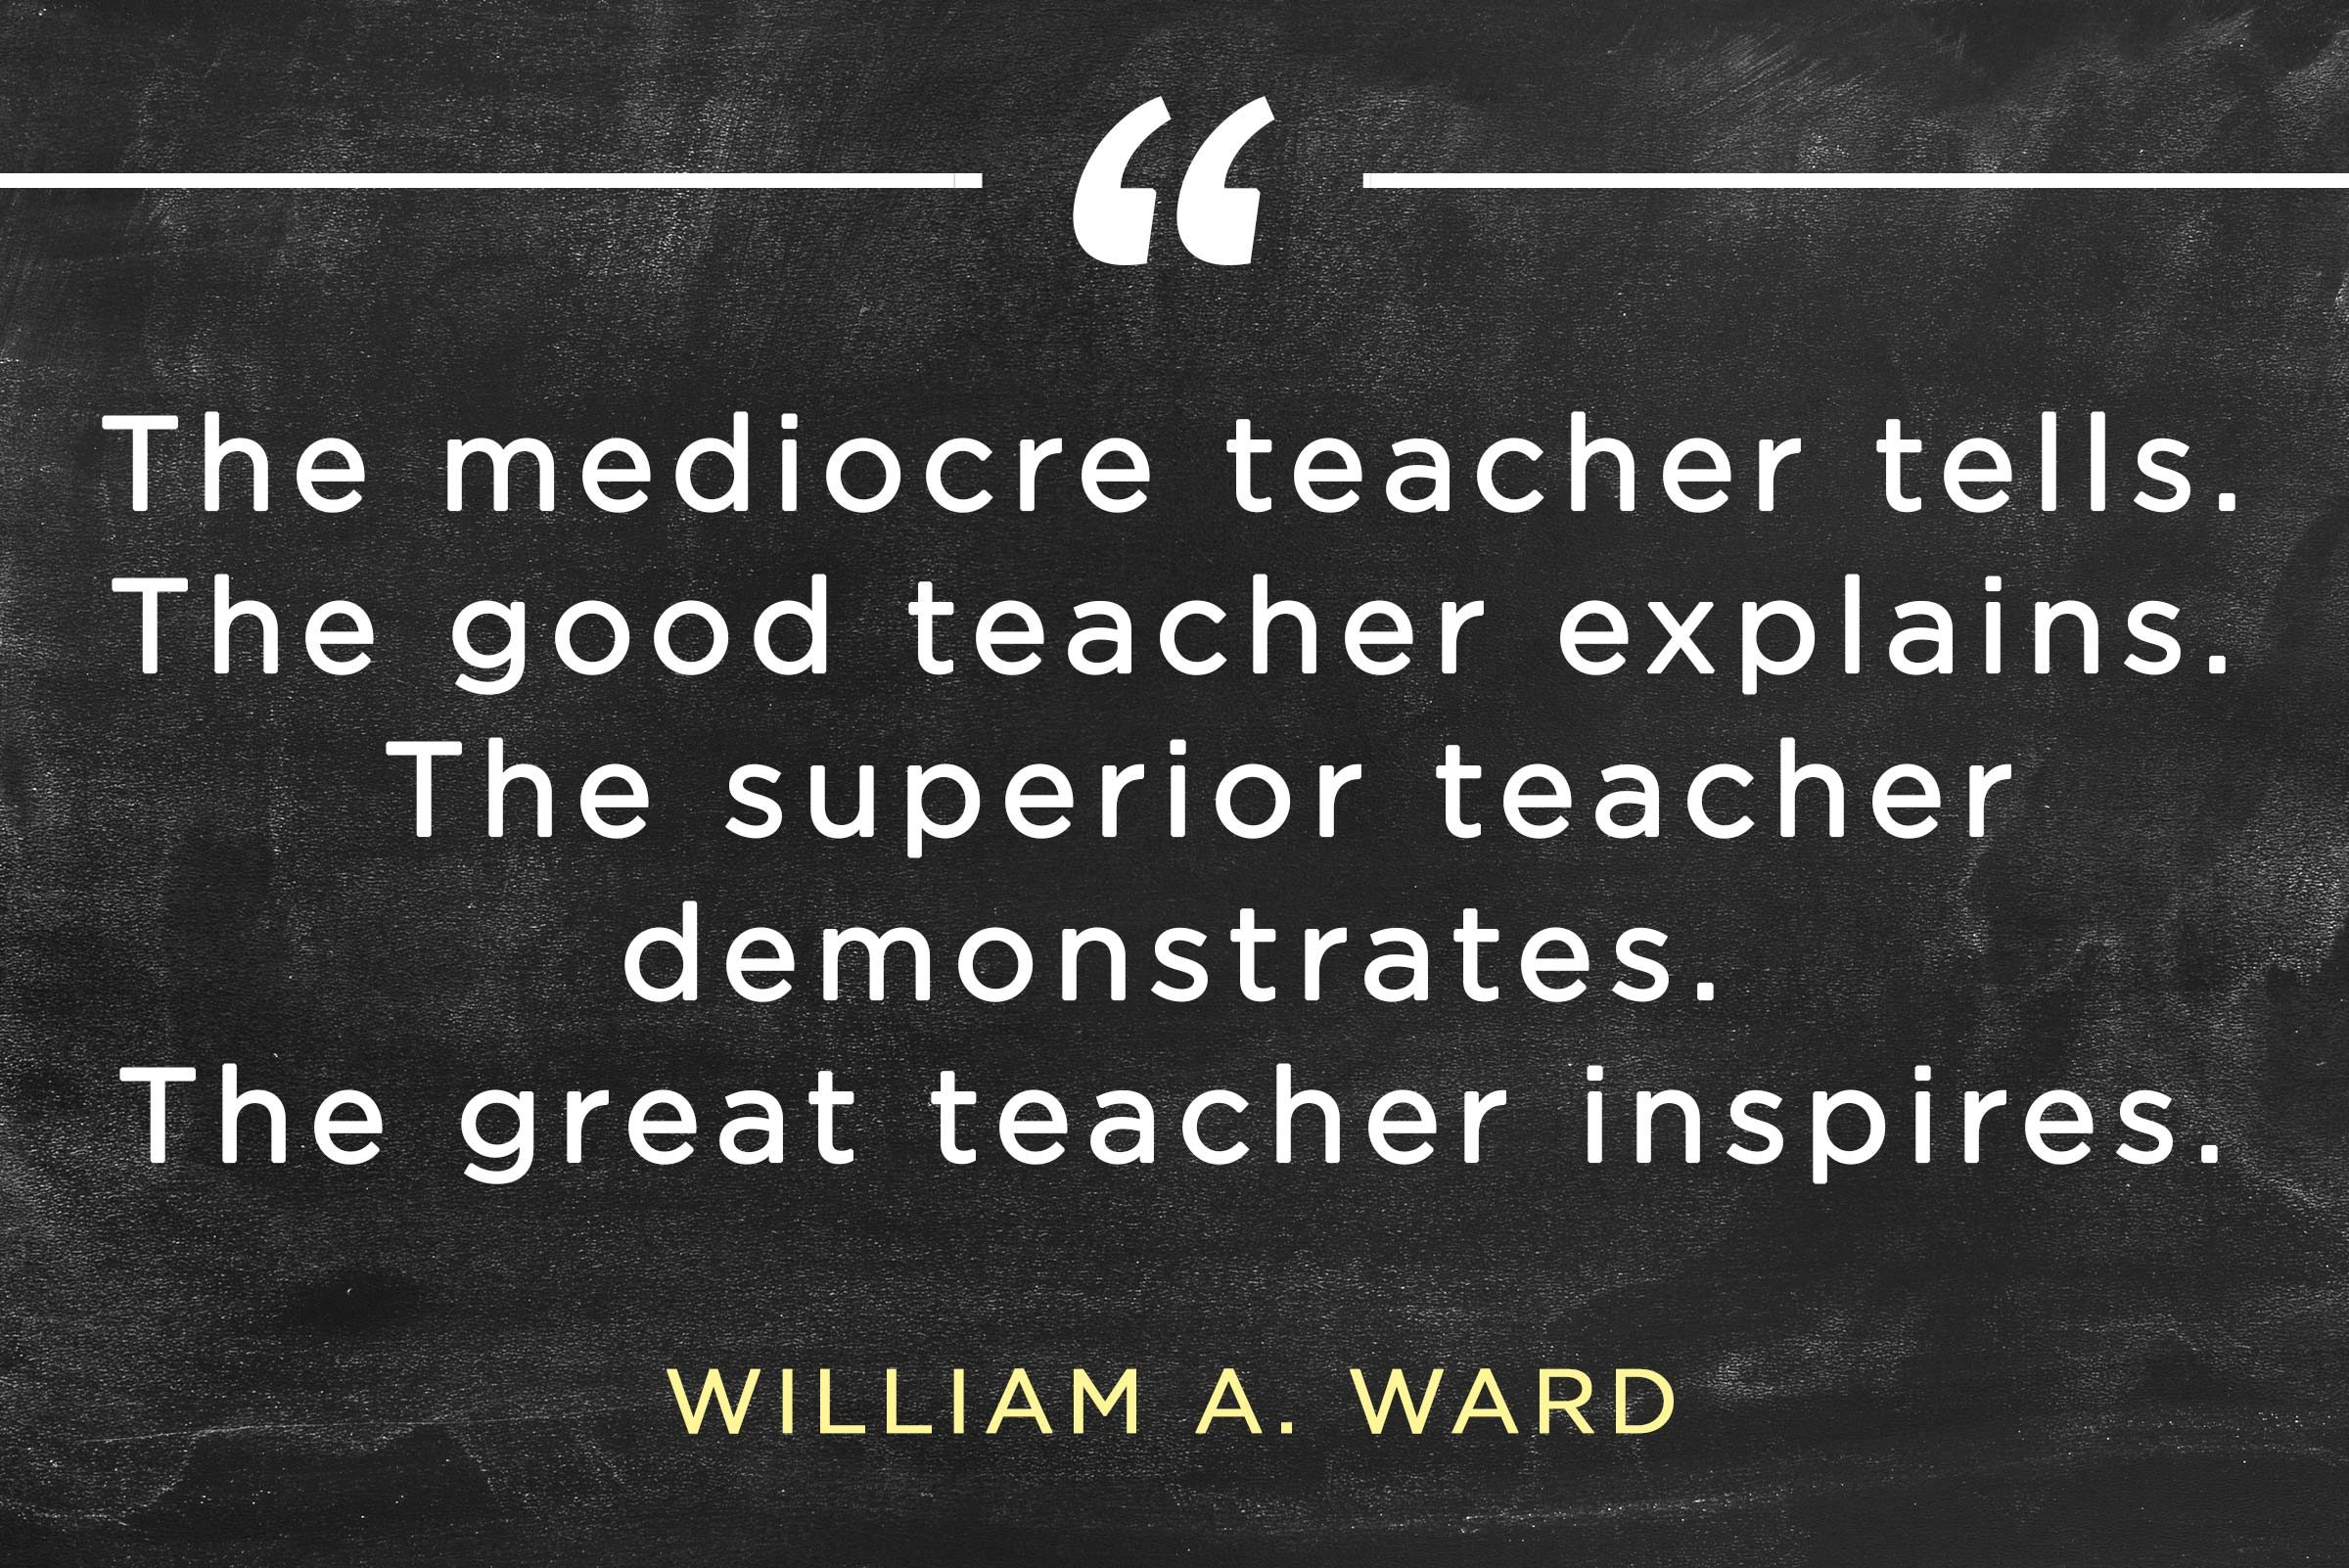 Educational Quotes For Teachers Gorgeous Inspirational Teacher Quotes  Reader's Digest